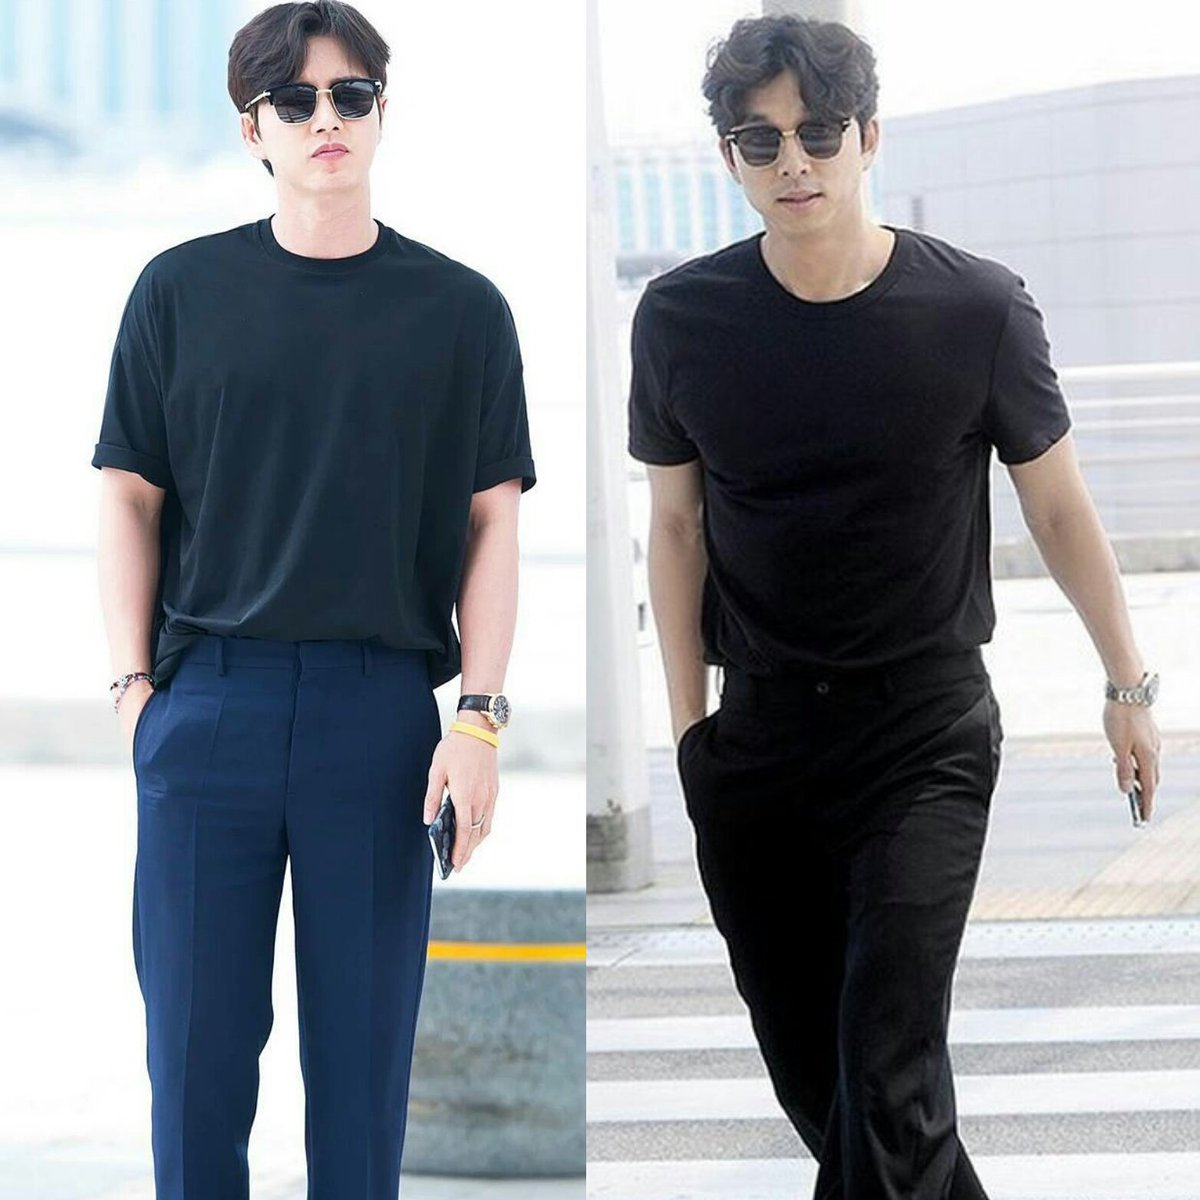 Han Hyo Joo Go Eun on Twitter u0026quot;Park Hae Jin and Gong Yoo Airport Fashion Incheon Airport. Same ...